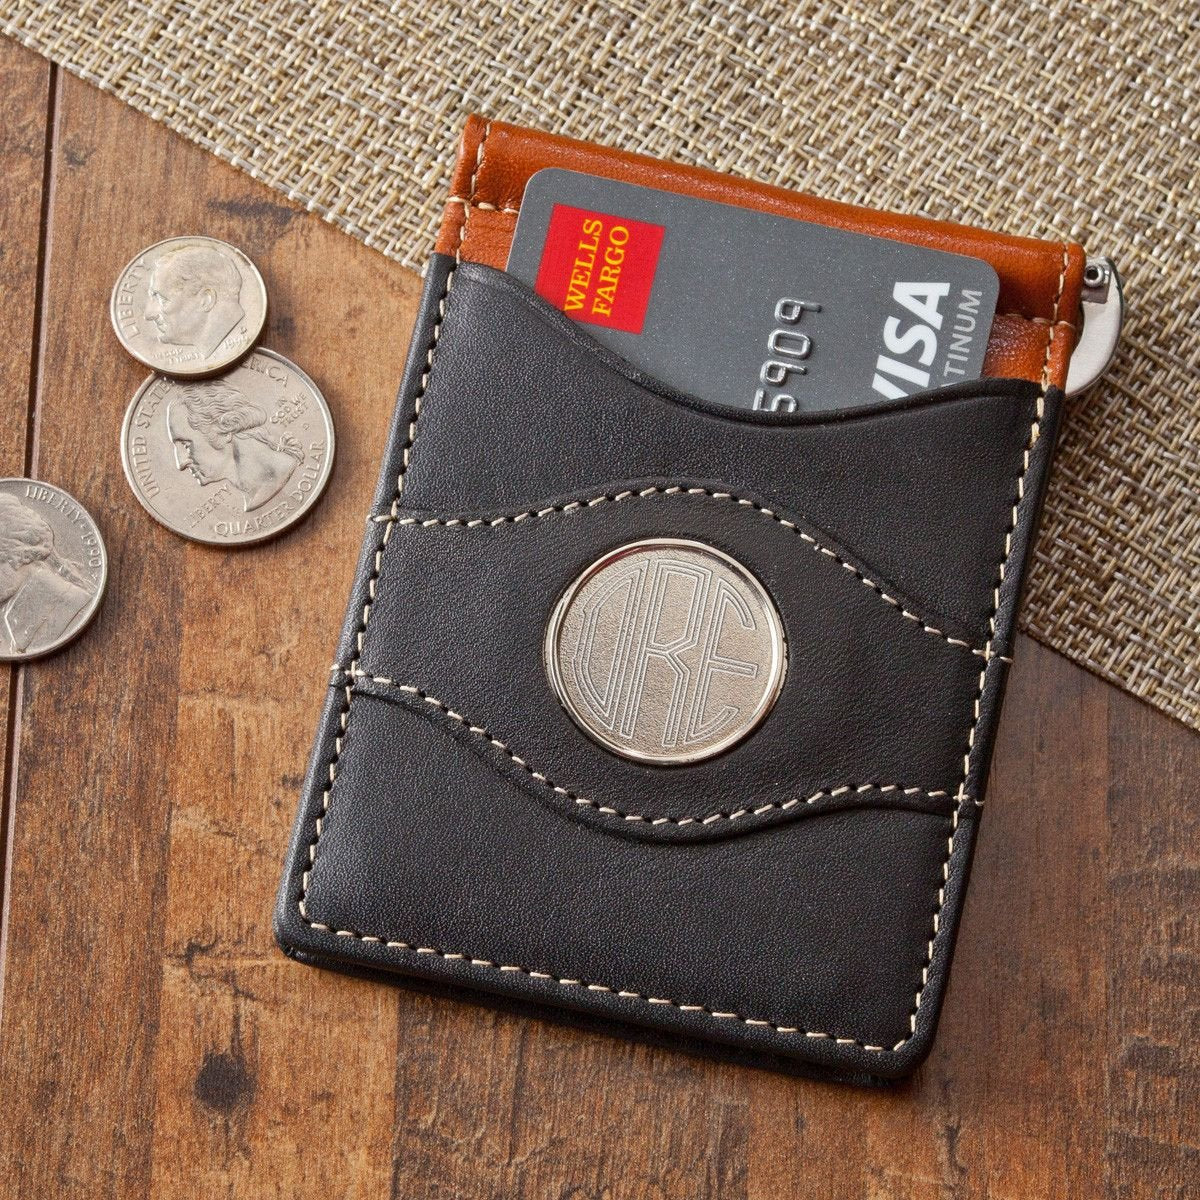 Personalized-Wallets-Leather-Two-Toned-Executive-Gifts